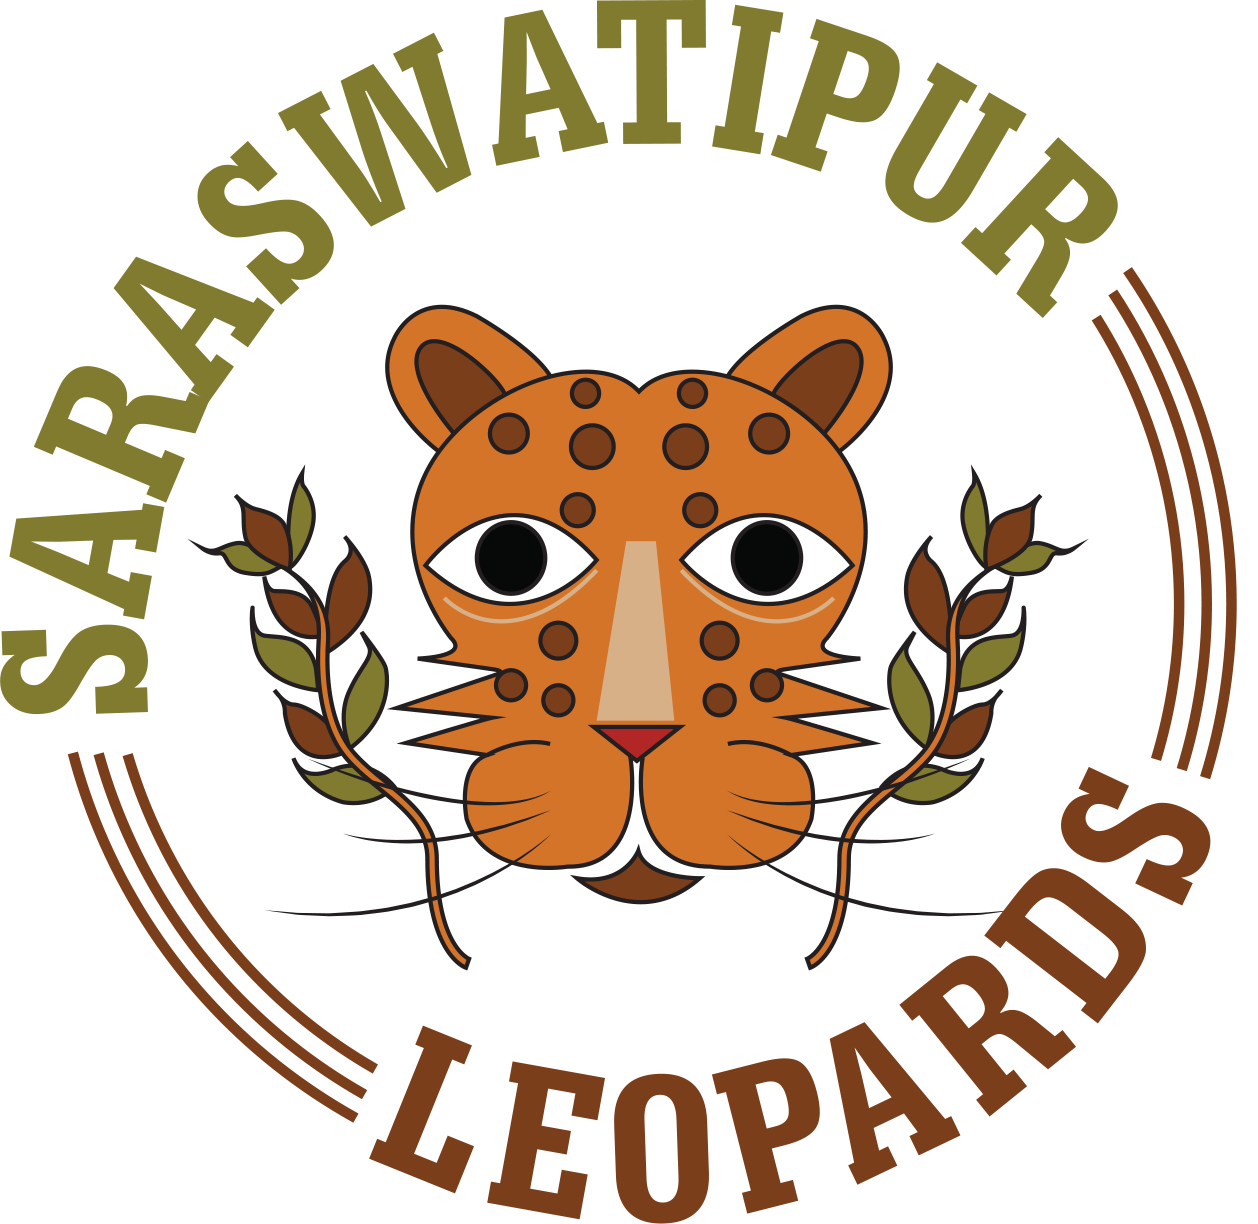 Saraswatipur Leopards - The team from the rugby mad villages of Saraswatipur in the north of West Bengal. These children love their rugby and play a quick as lightning version of the game honed on their very own riverside beach and on grounds next to elephant filled forests. And that Leopard is no mythical beast, they have leopards wandering around, stealing the odd animal.